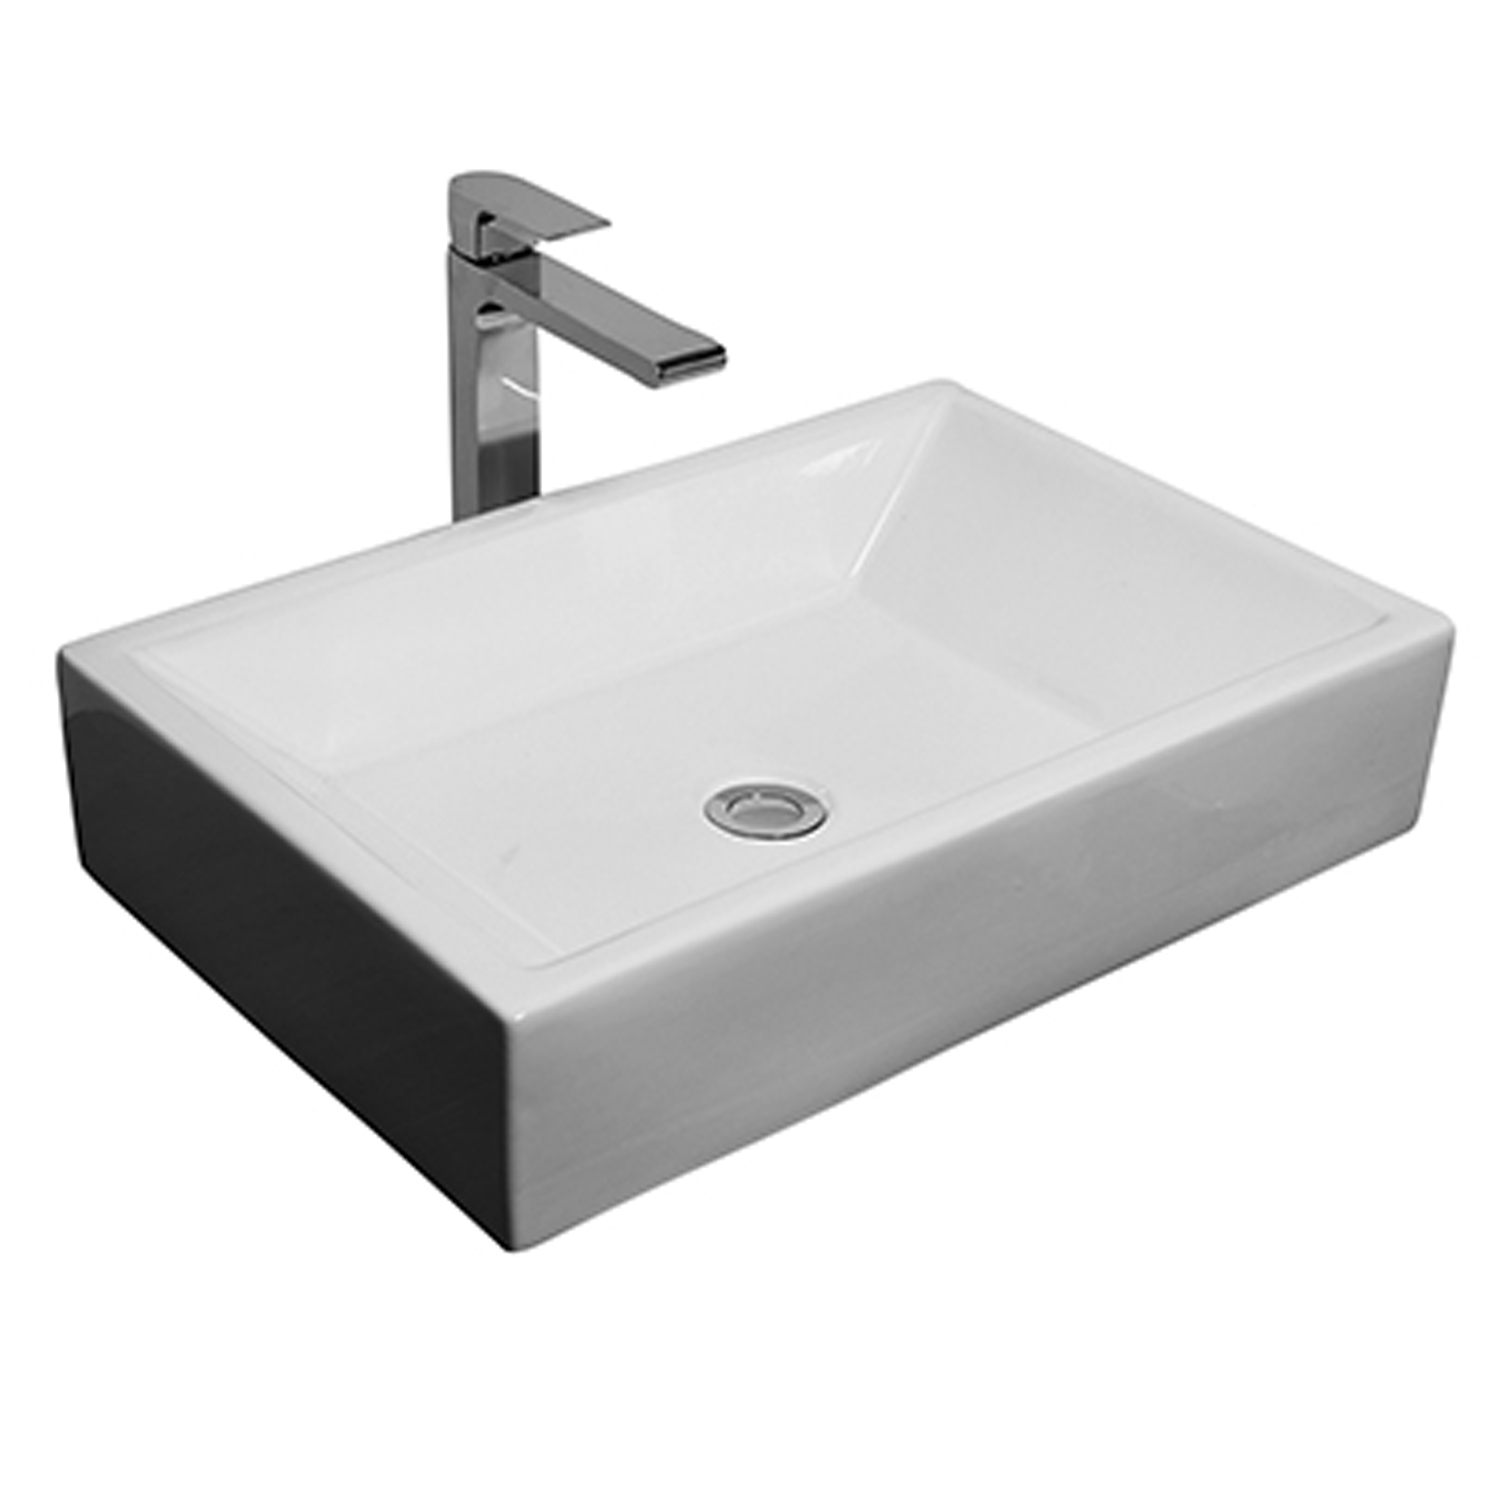 bathroom vanity basins - Bathroom Ideas Melbourne